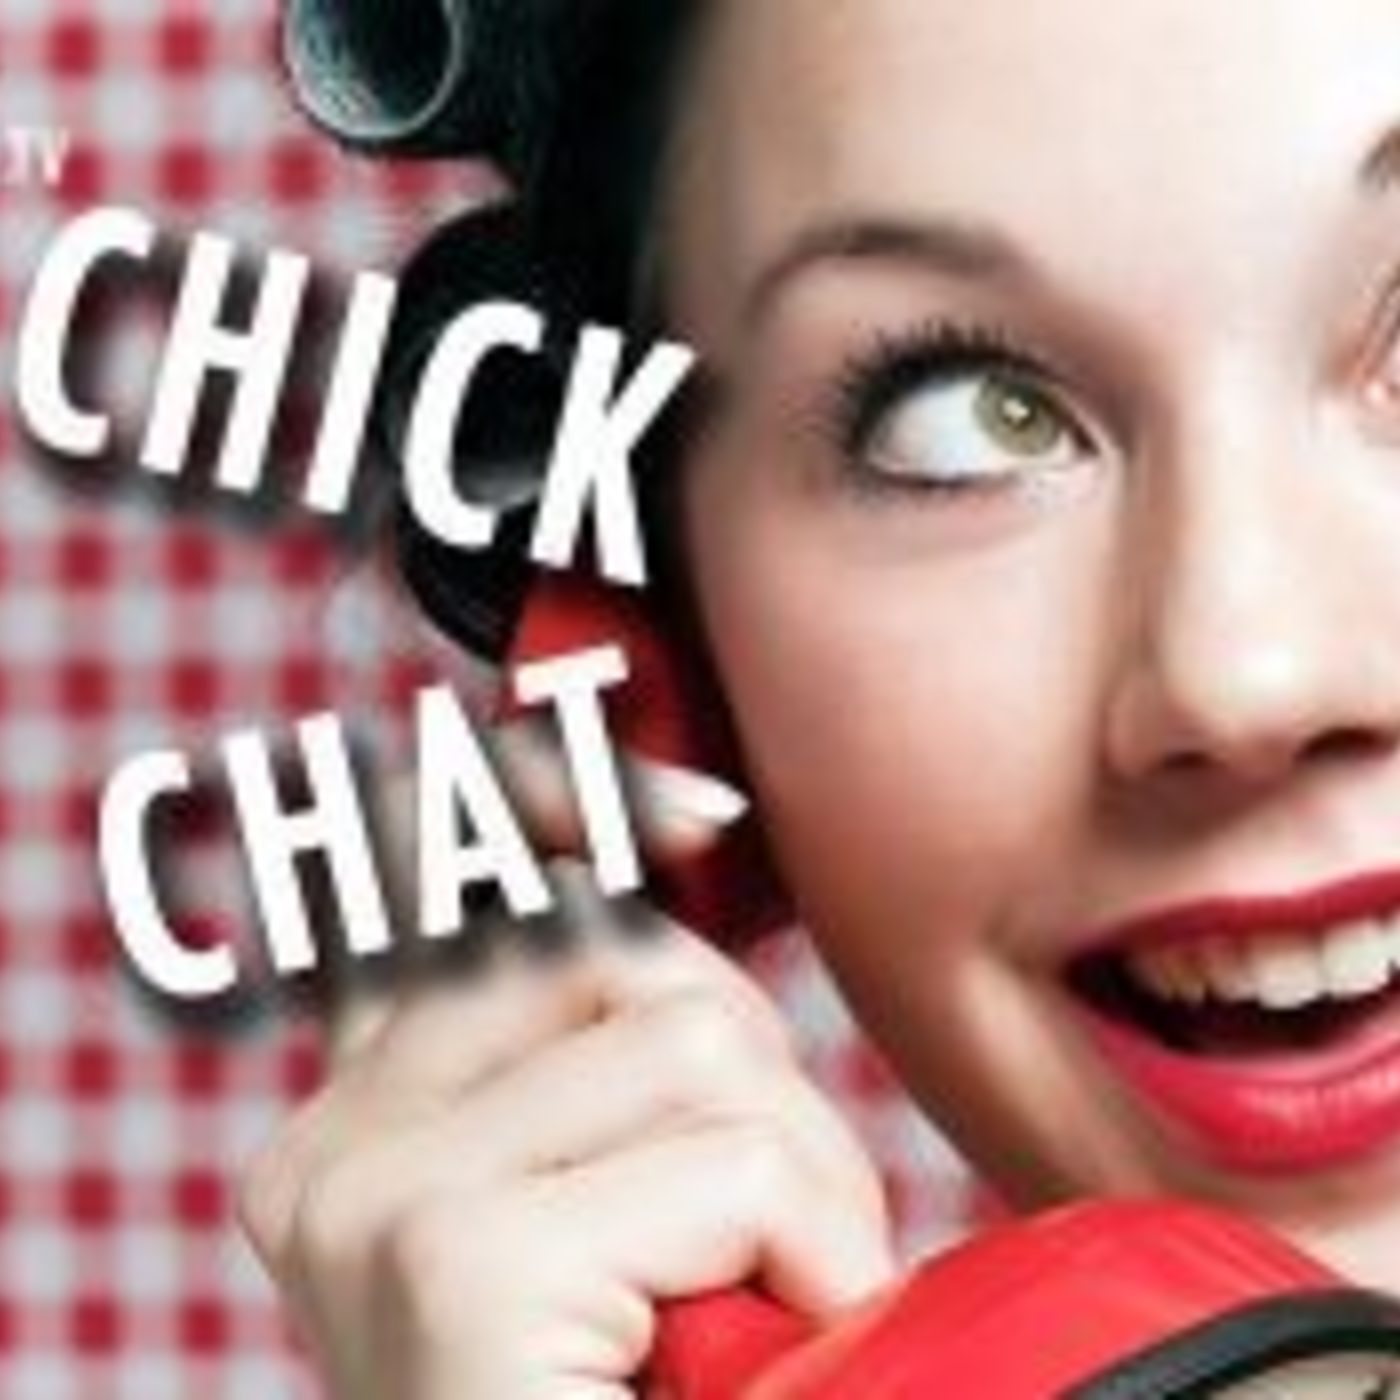 Chick Chat: Soapy Stories